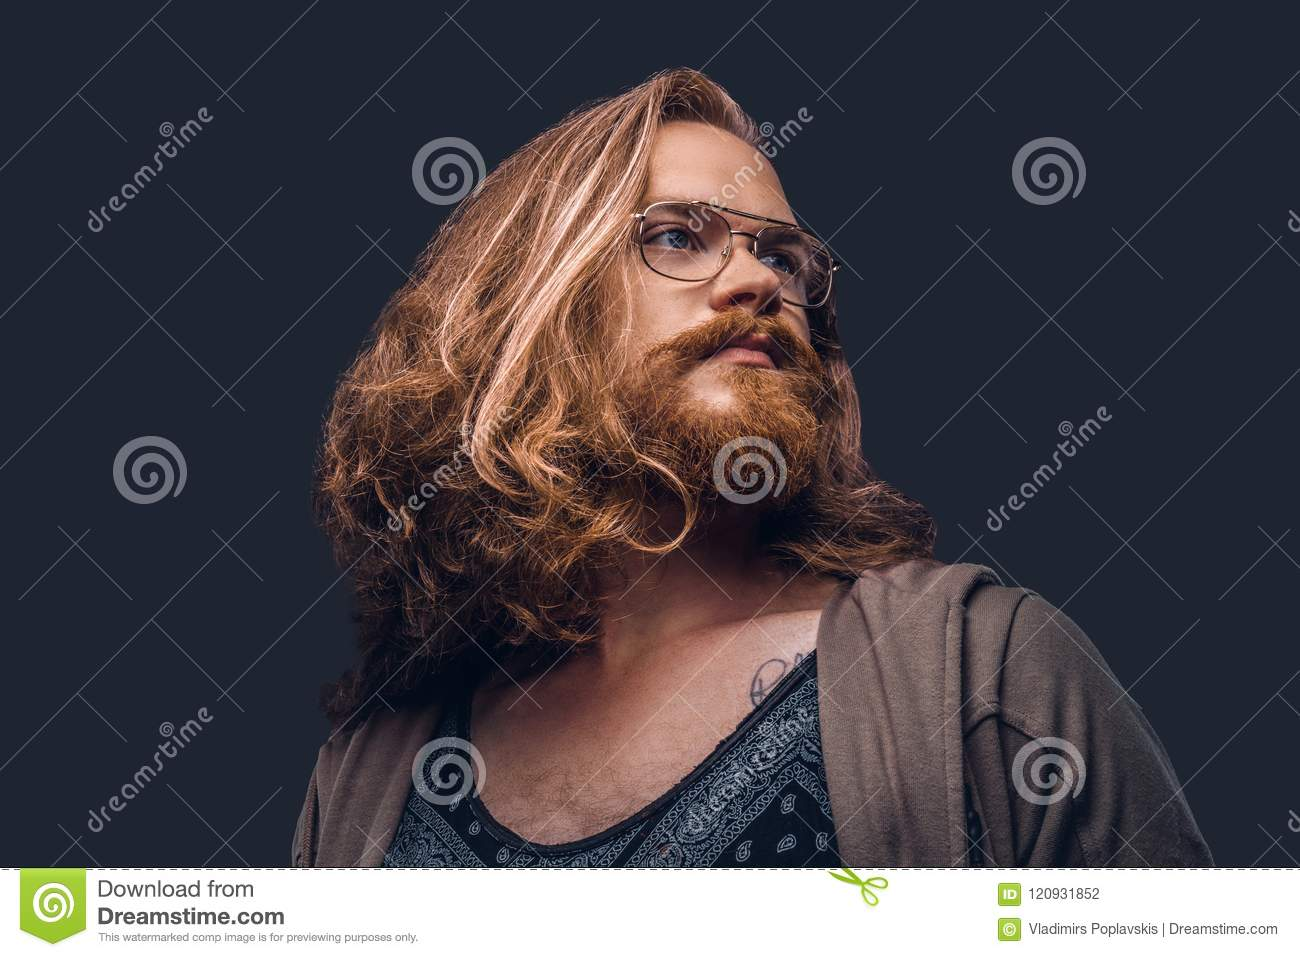 Close-up portrait of a redhead hipster male with long luxuriant hair and full beard dressed in casual clothes standing